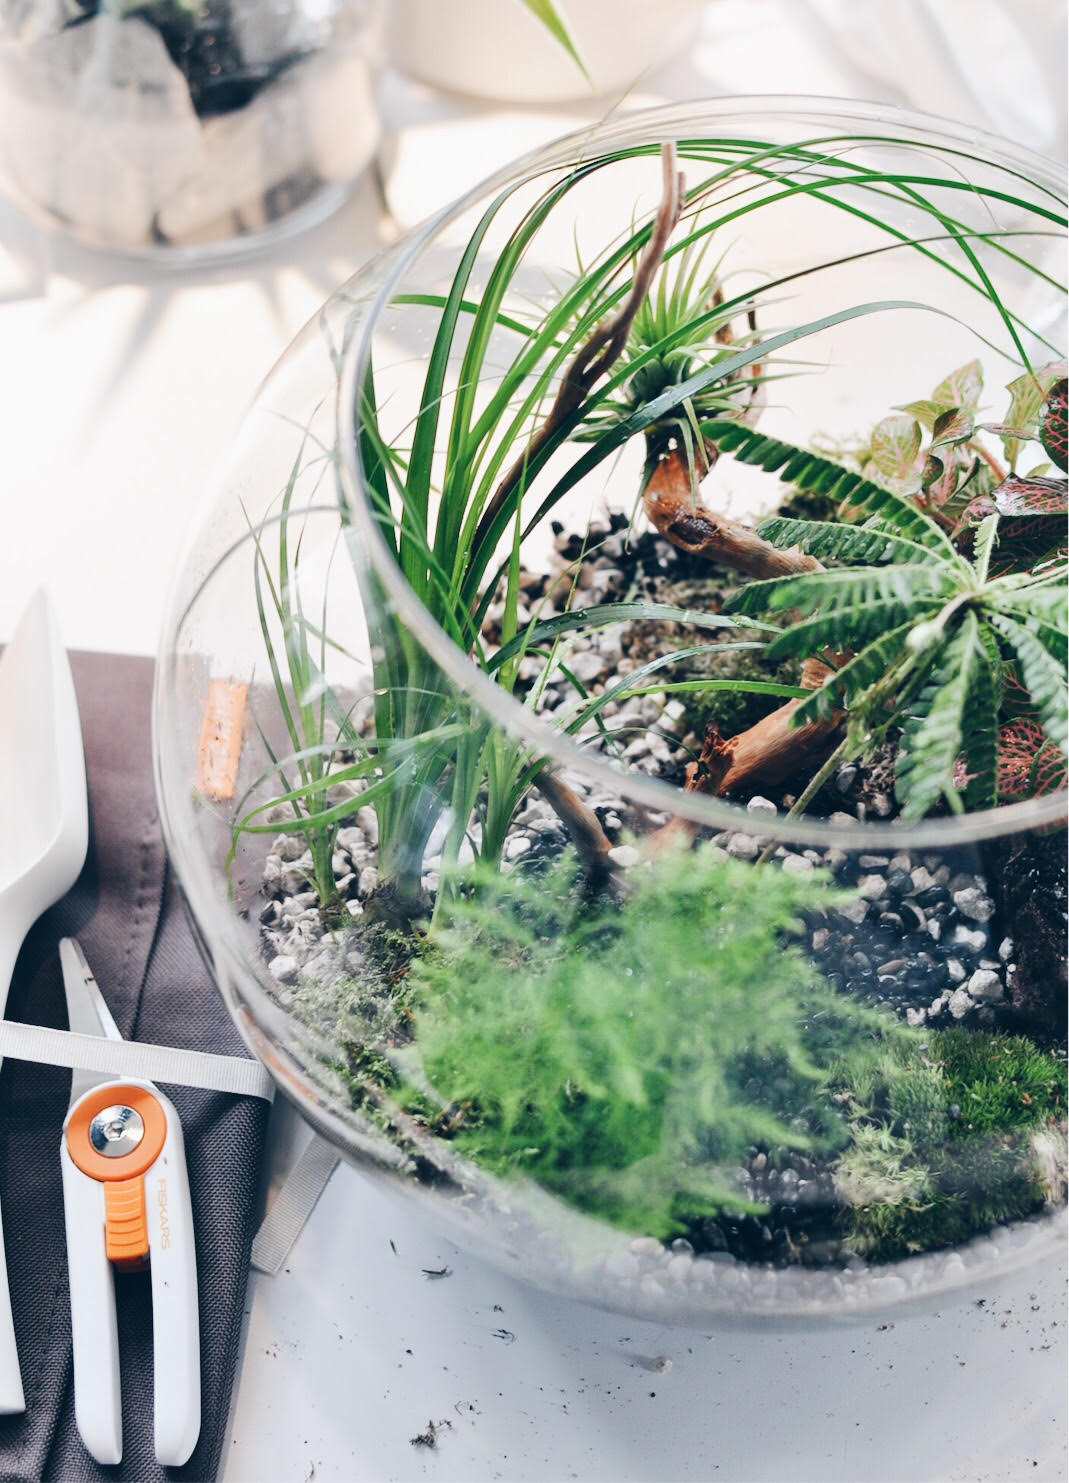 terrarium, DIY terrarium, make your own terrarium, SkyGarden, Terrarium supplies, Fiskars, Glass terrarium containers, Gardening DIY, DIY Garden ideas, Garden Projects, Urban jungle, DIY garden decor